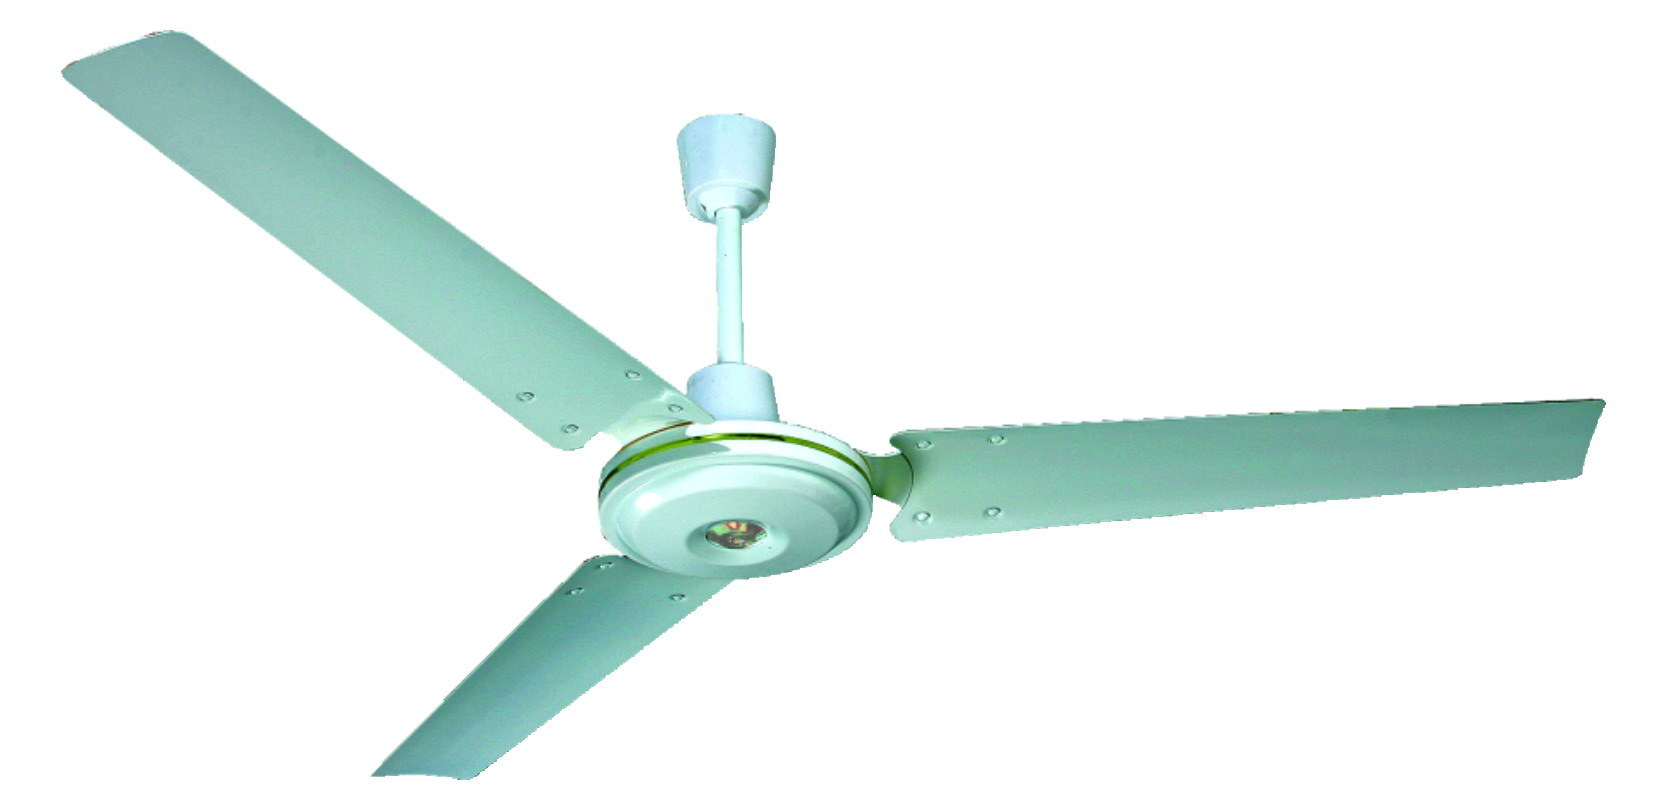 Video: Electrical Wiring for Ceiling Fan Installation | eHow.com